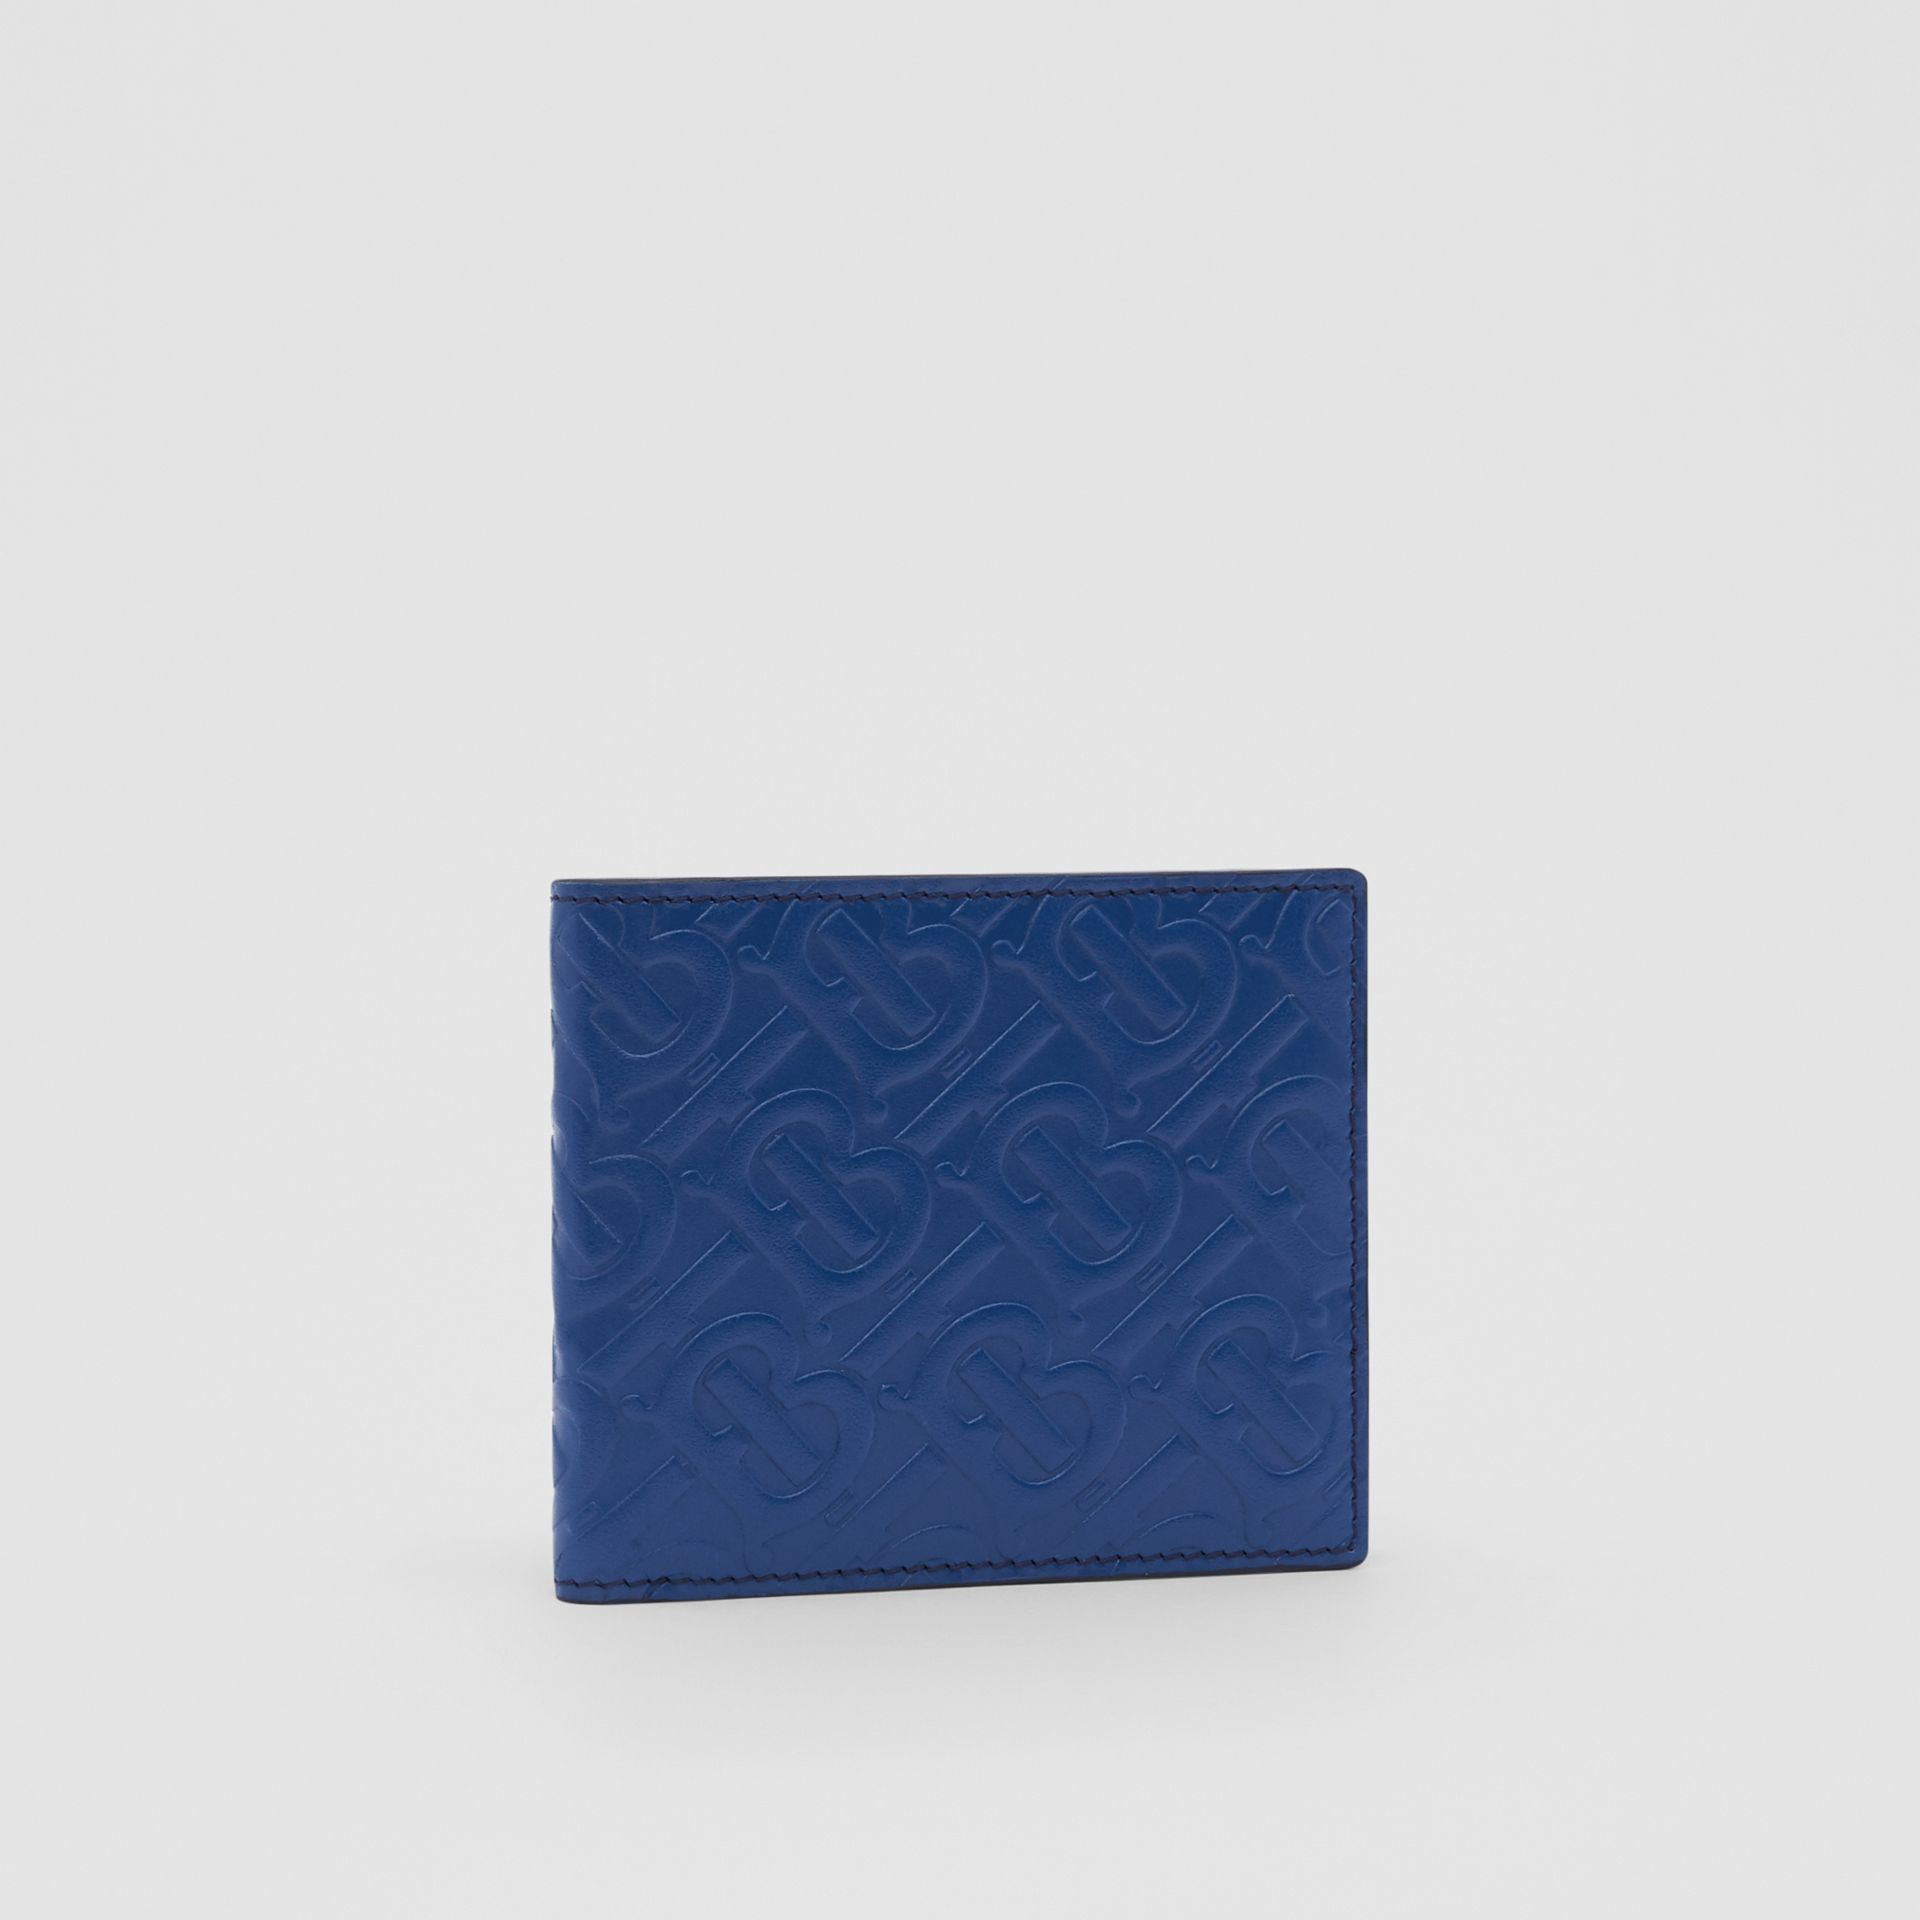 Monogram Leather International Bifold Wallet in Pale Canvas Blue - Men | Burberry United States - gallery image 3